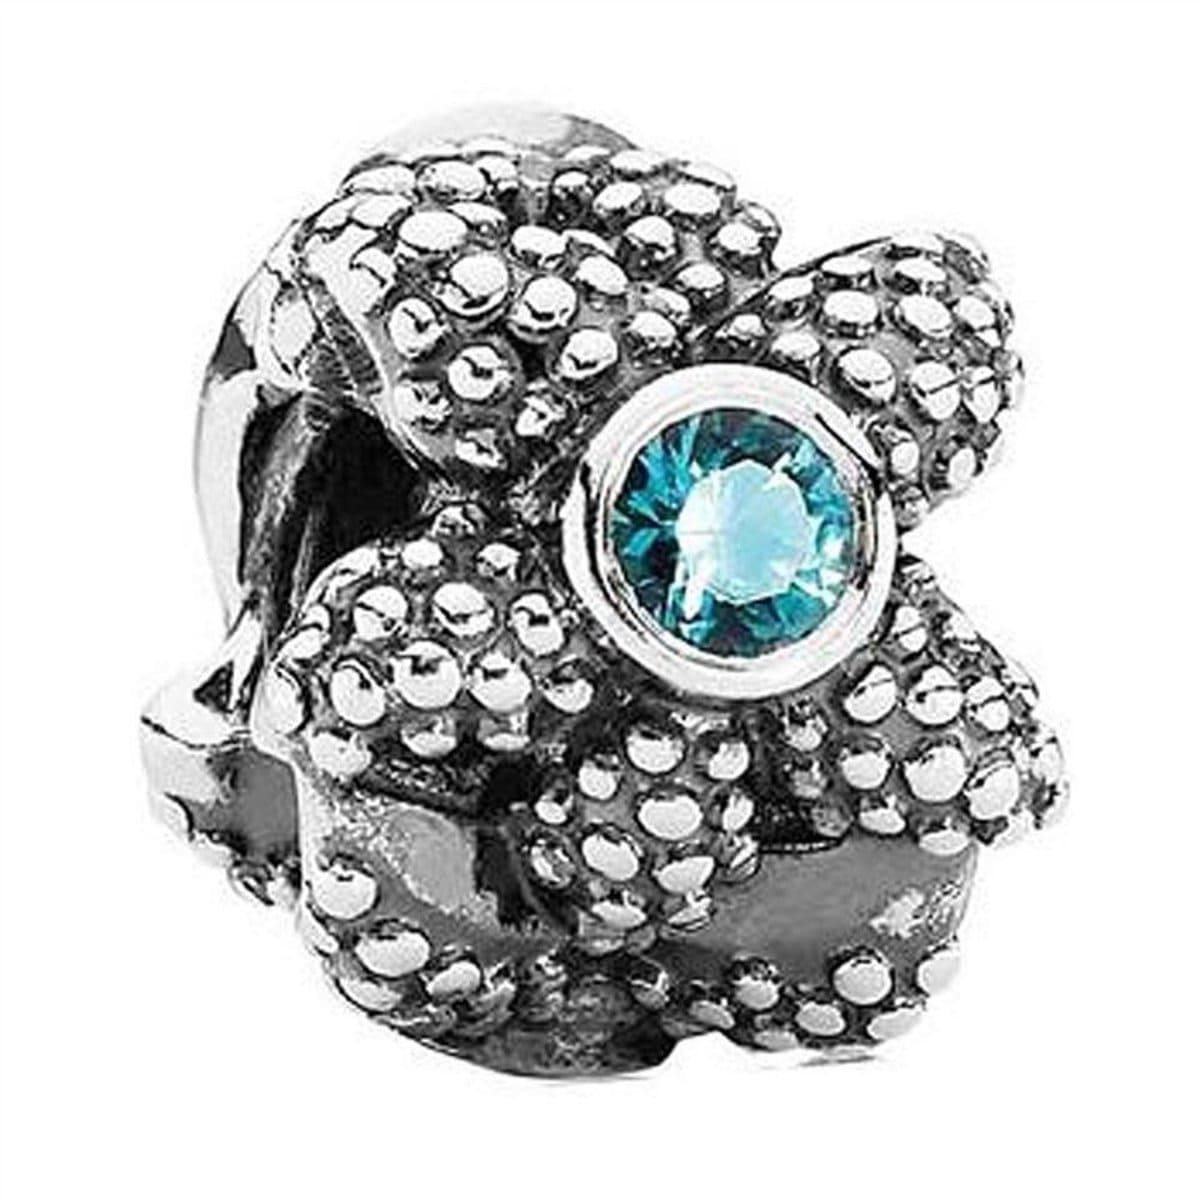 Sea Star Turquoise Synthetic Spinel Charm - 791163SST-Pandora-Renee Taylor Gallery